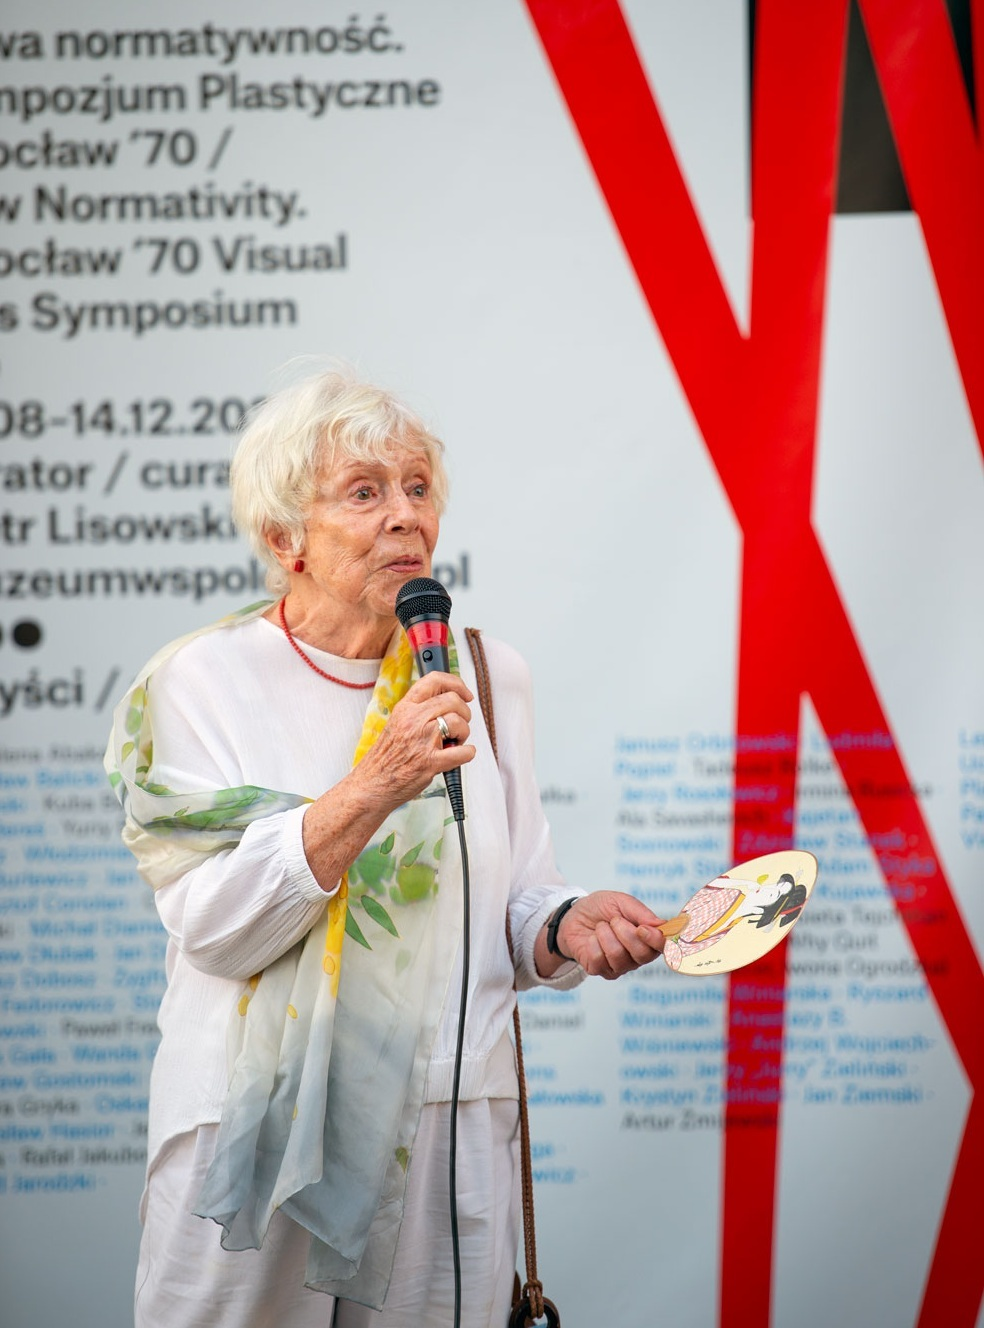 Anna Szpakowska-Kujawska during the opening of the exhibition